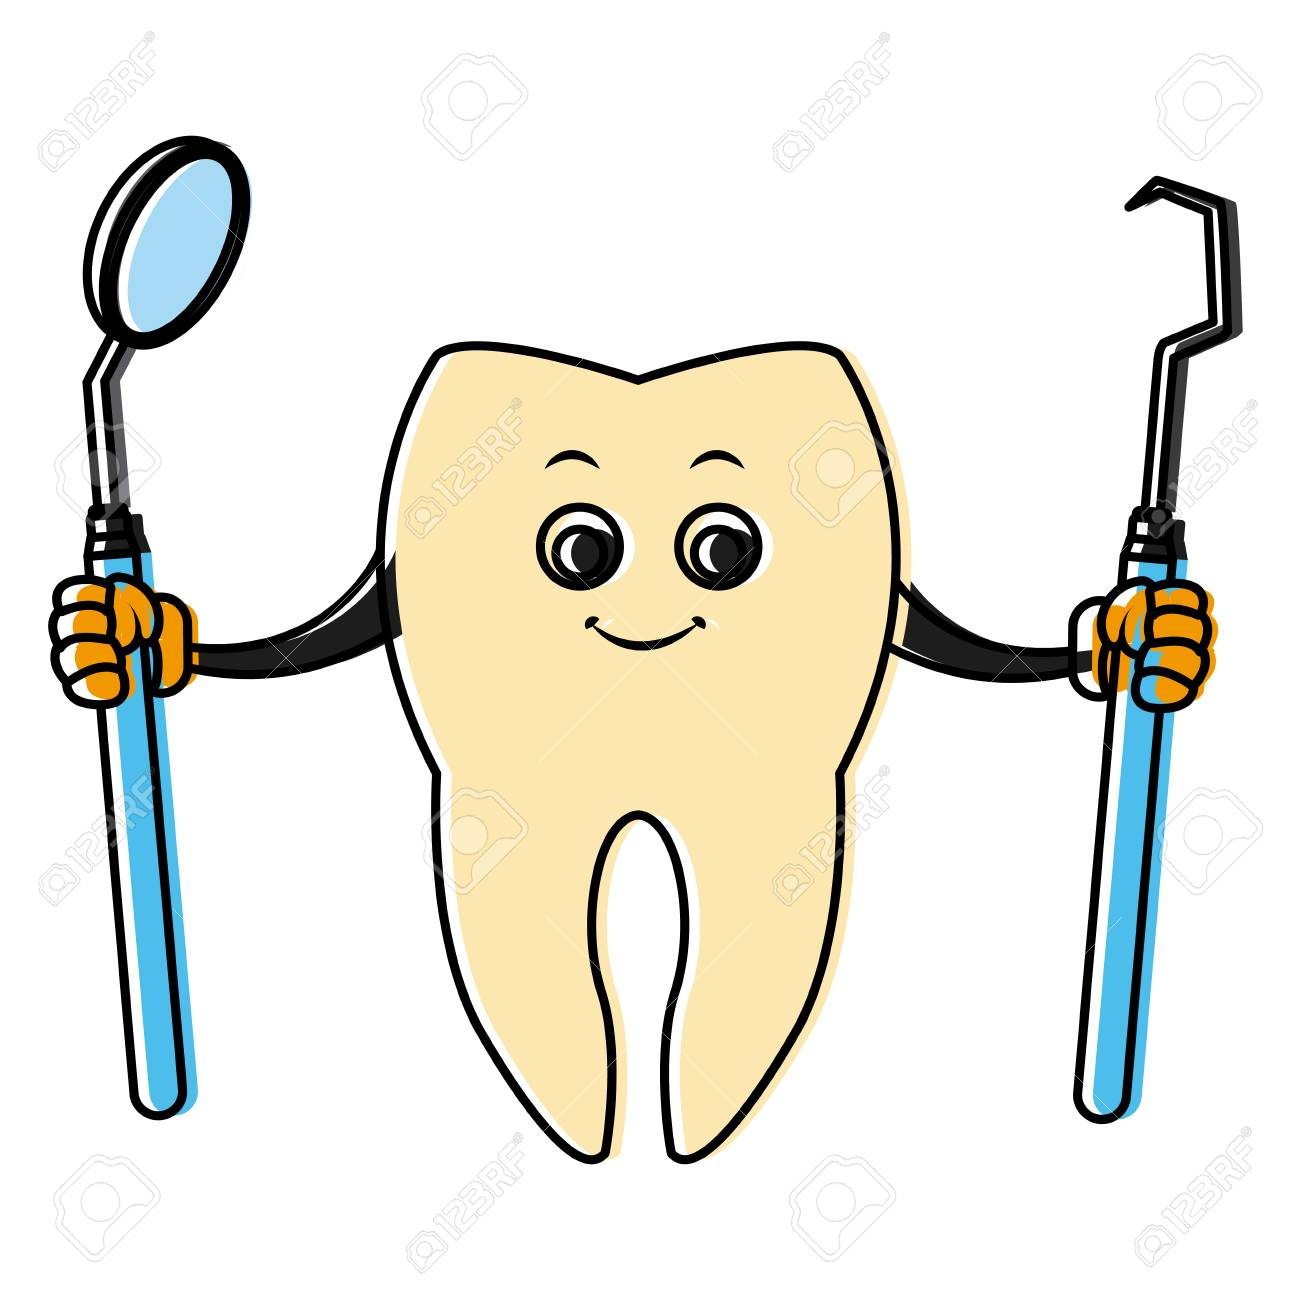 Tooth With Dental Tools Cartoon Icon Vector Illustration Graphic Design Stock